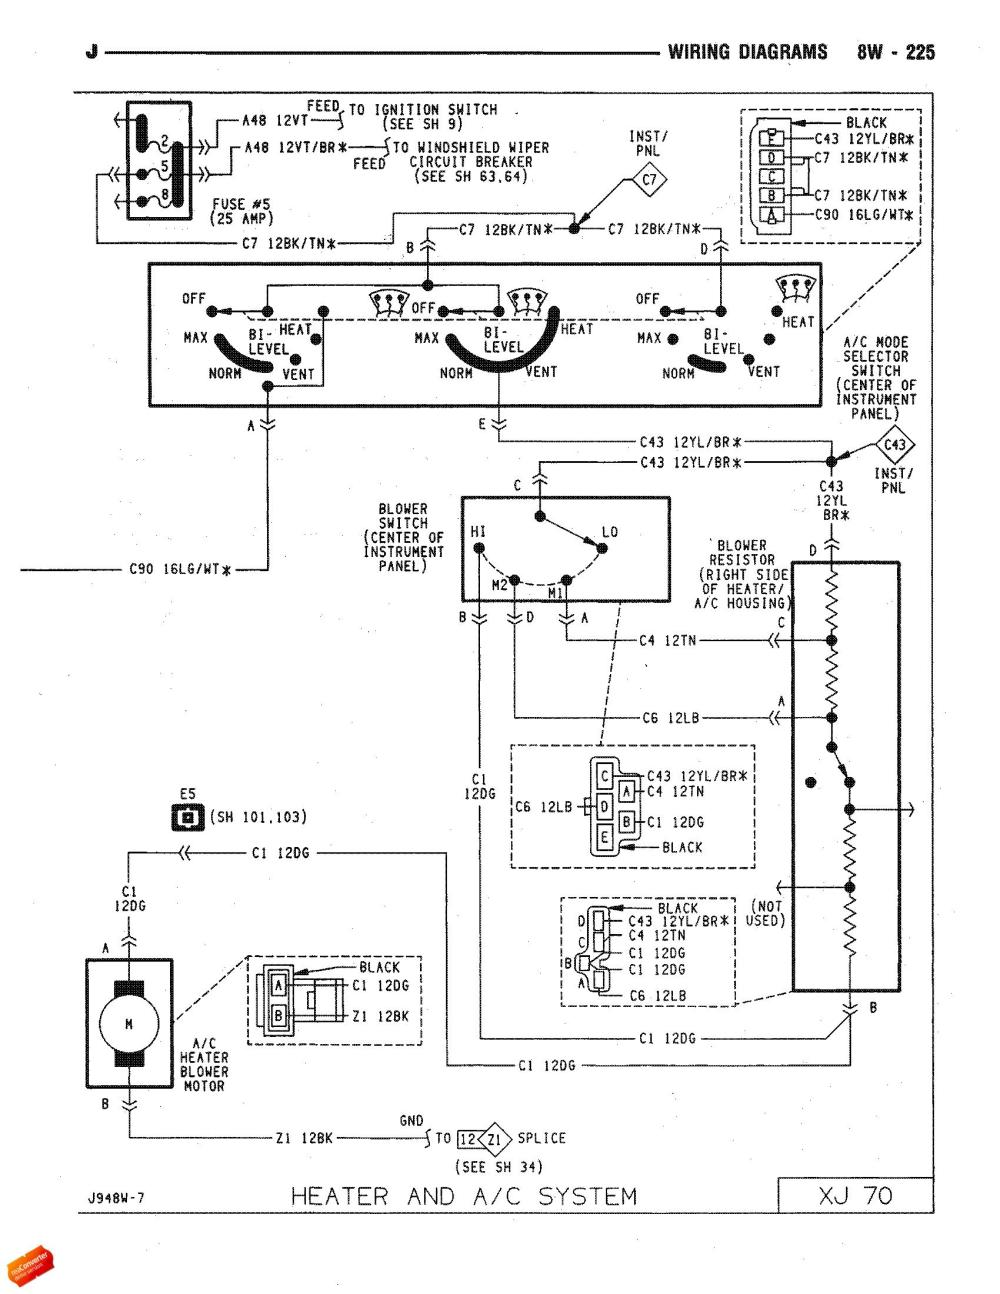 medium resolution of blower motor relay location jeep cherokee forum 94 nissan sentra diagram 94 jeep cherokee heater diagram